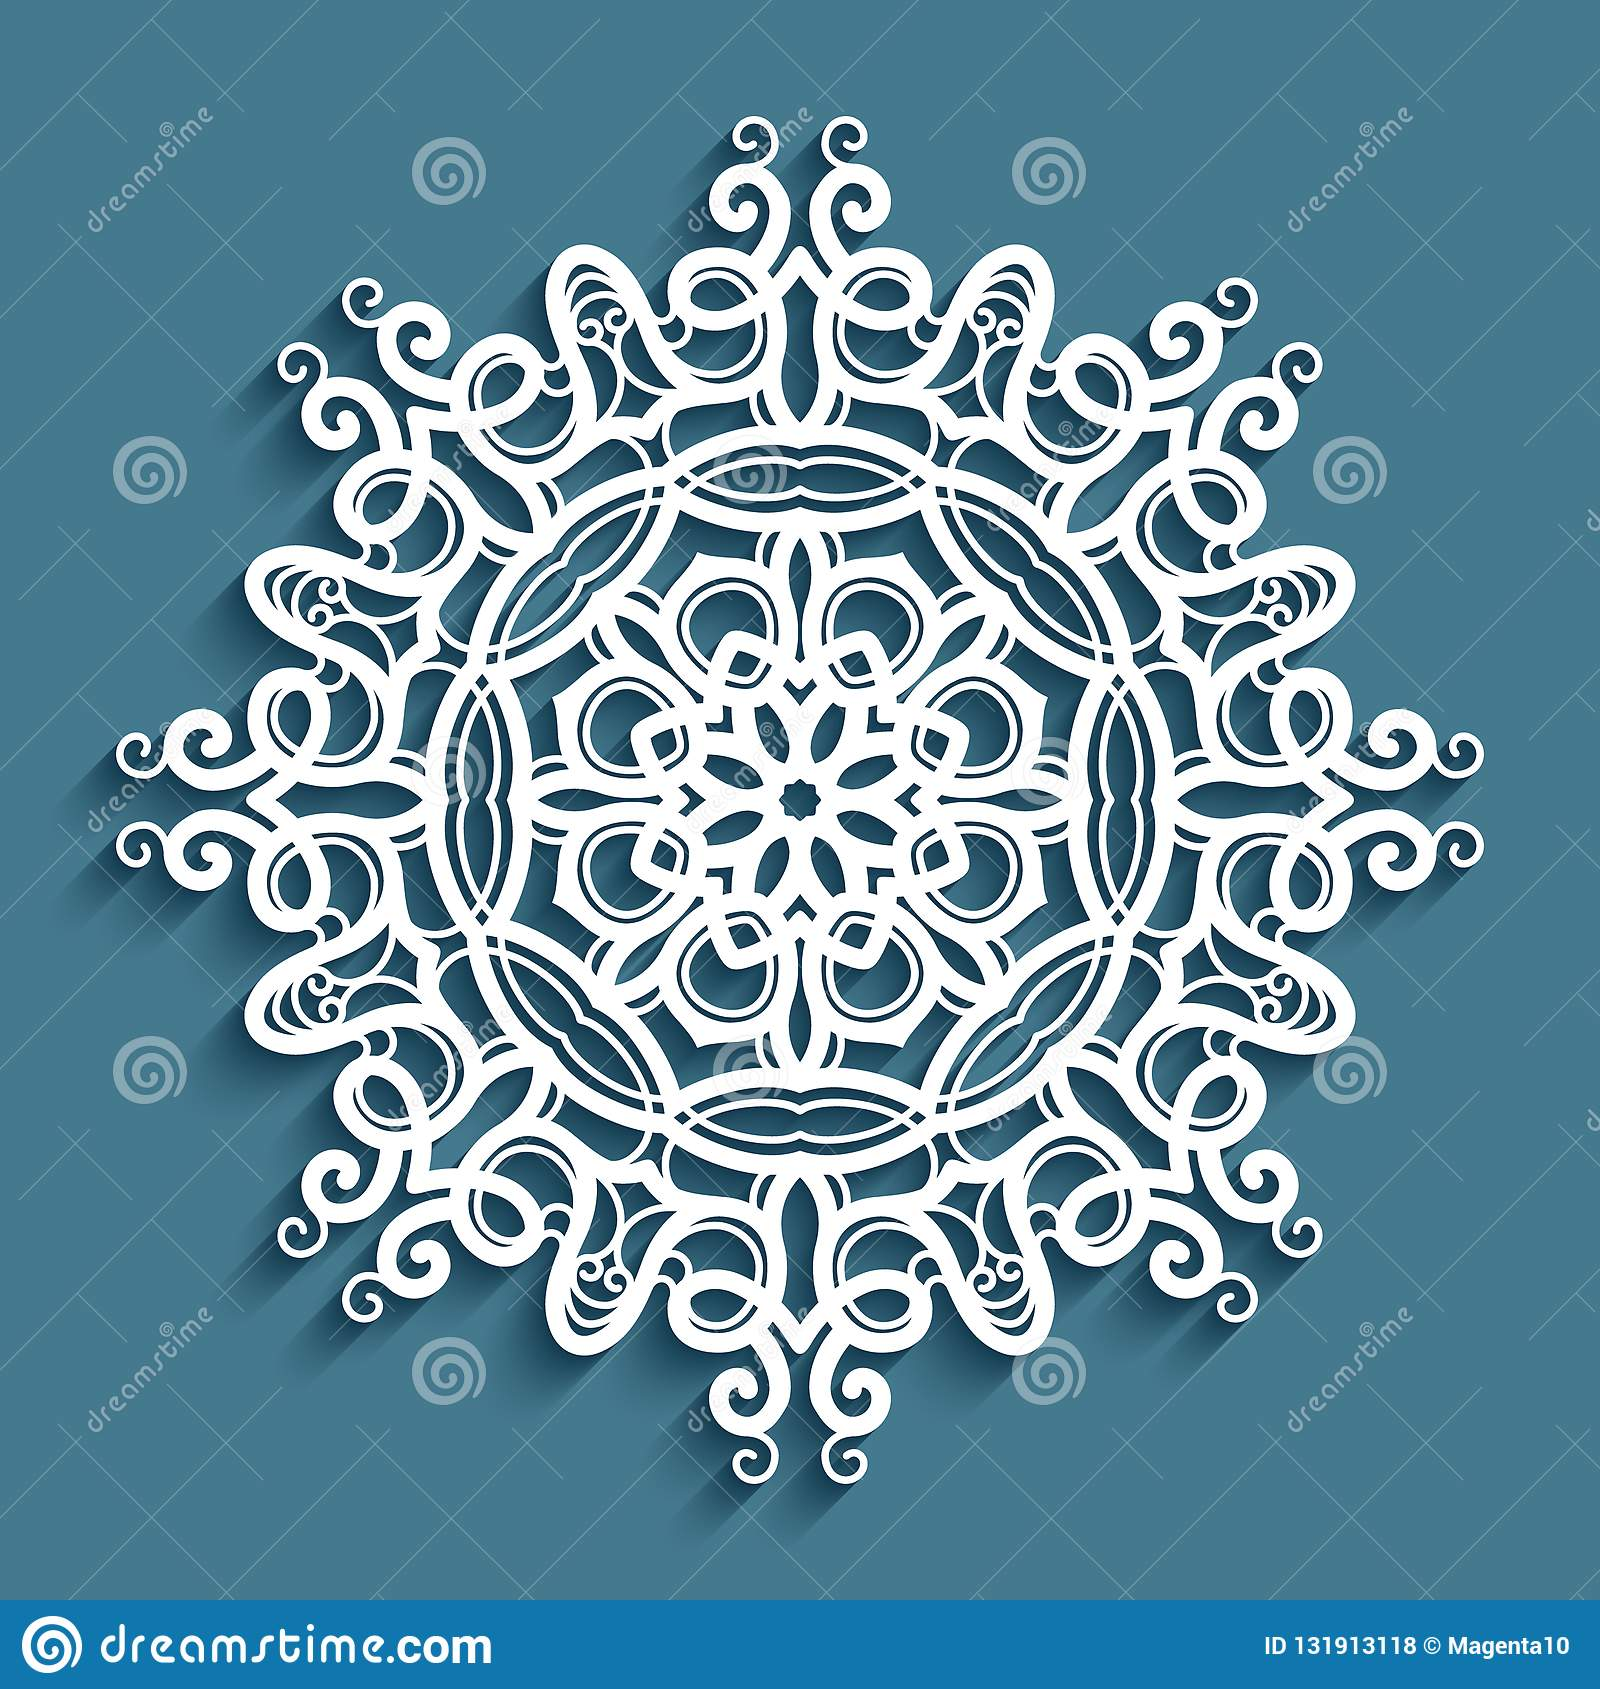 Crochet Lace Doily Cut Out Snowflake Pattern Stock Vector